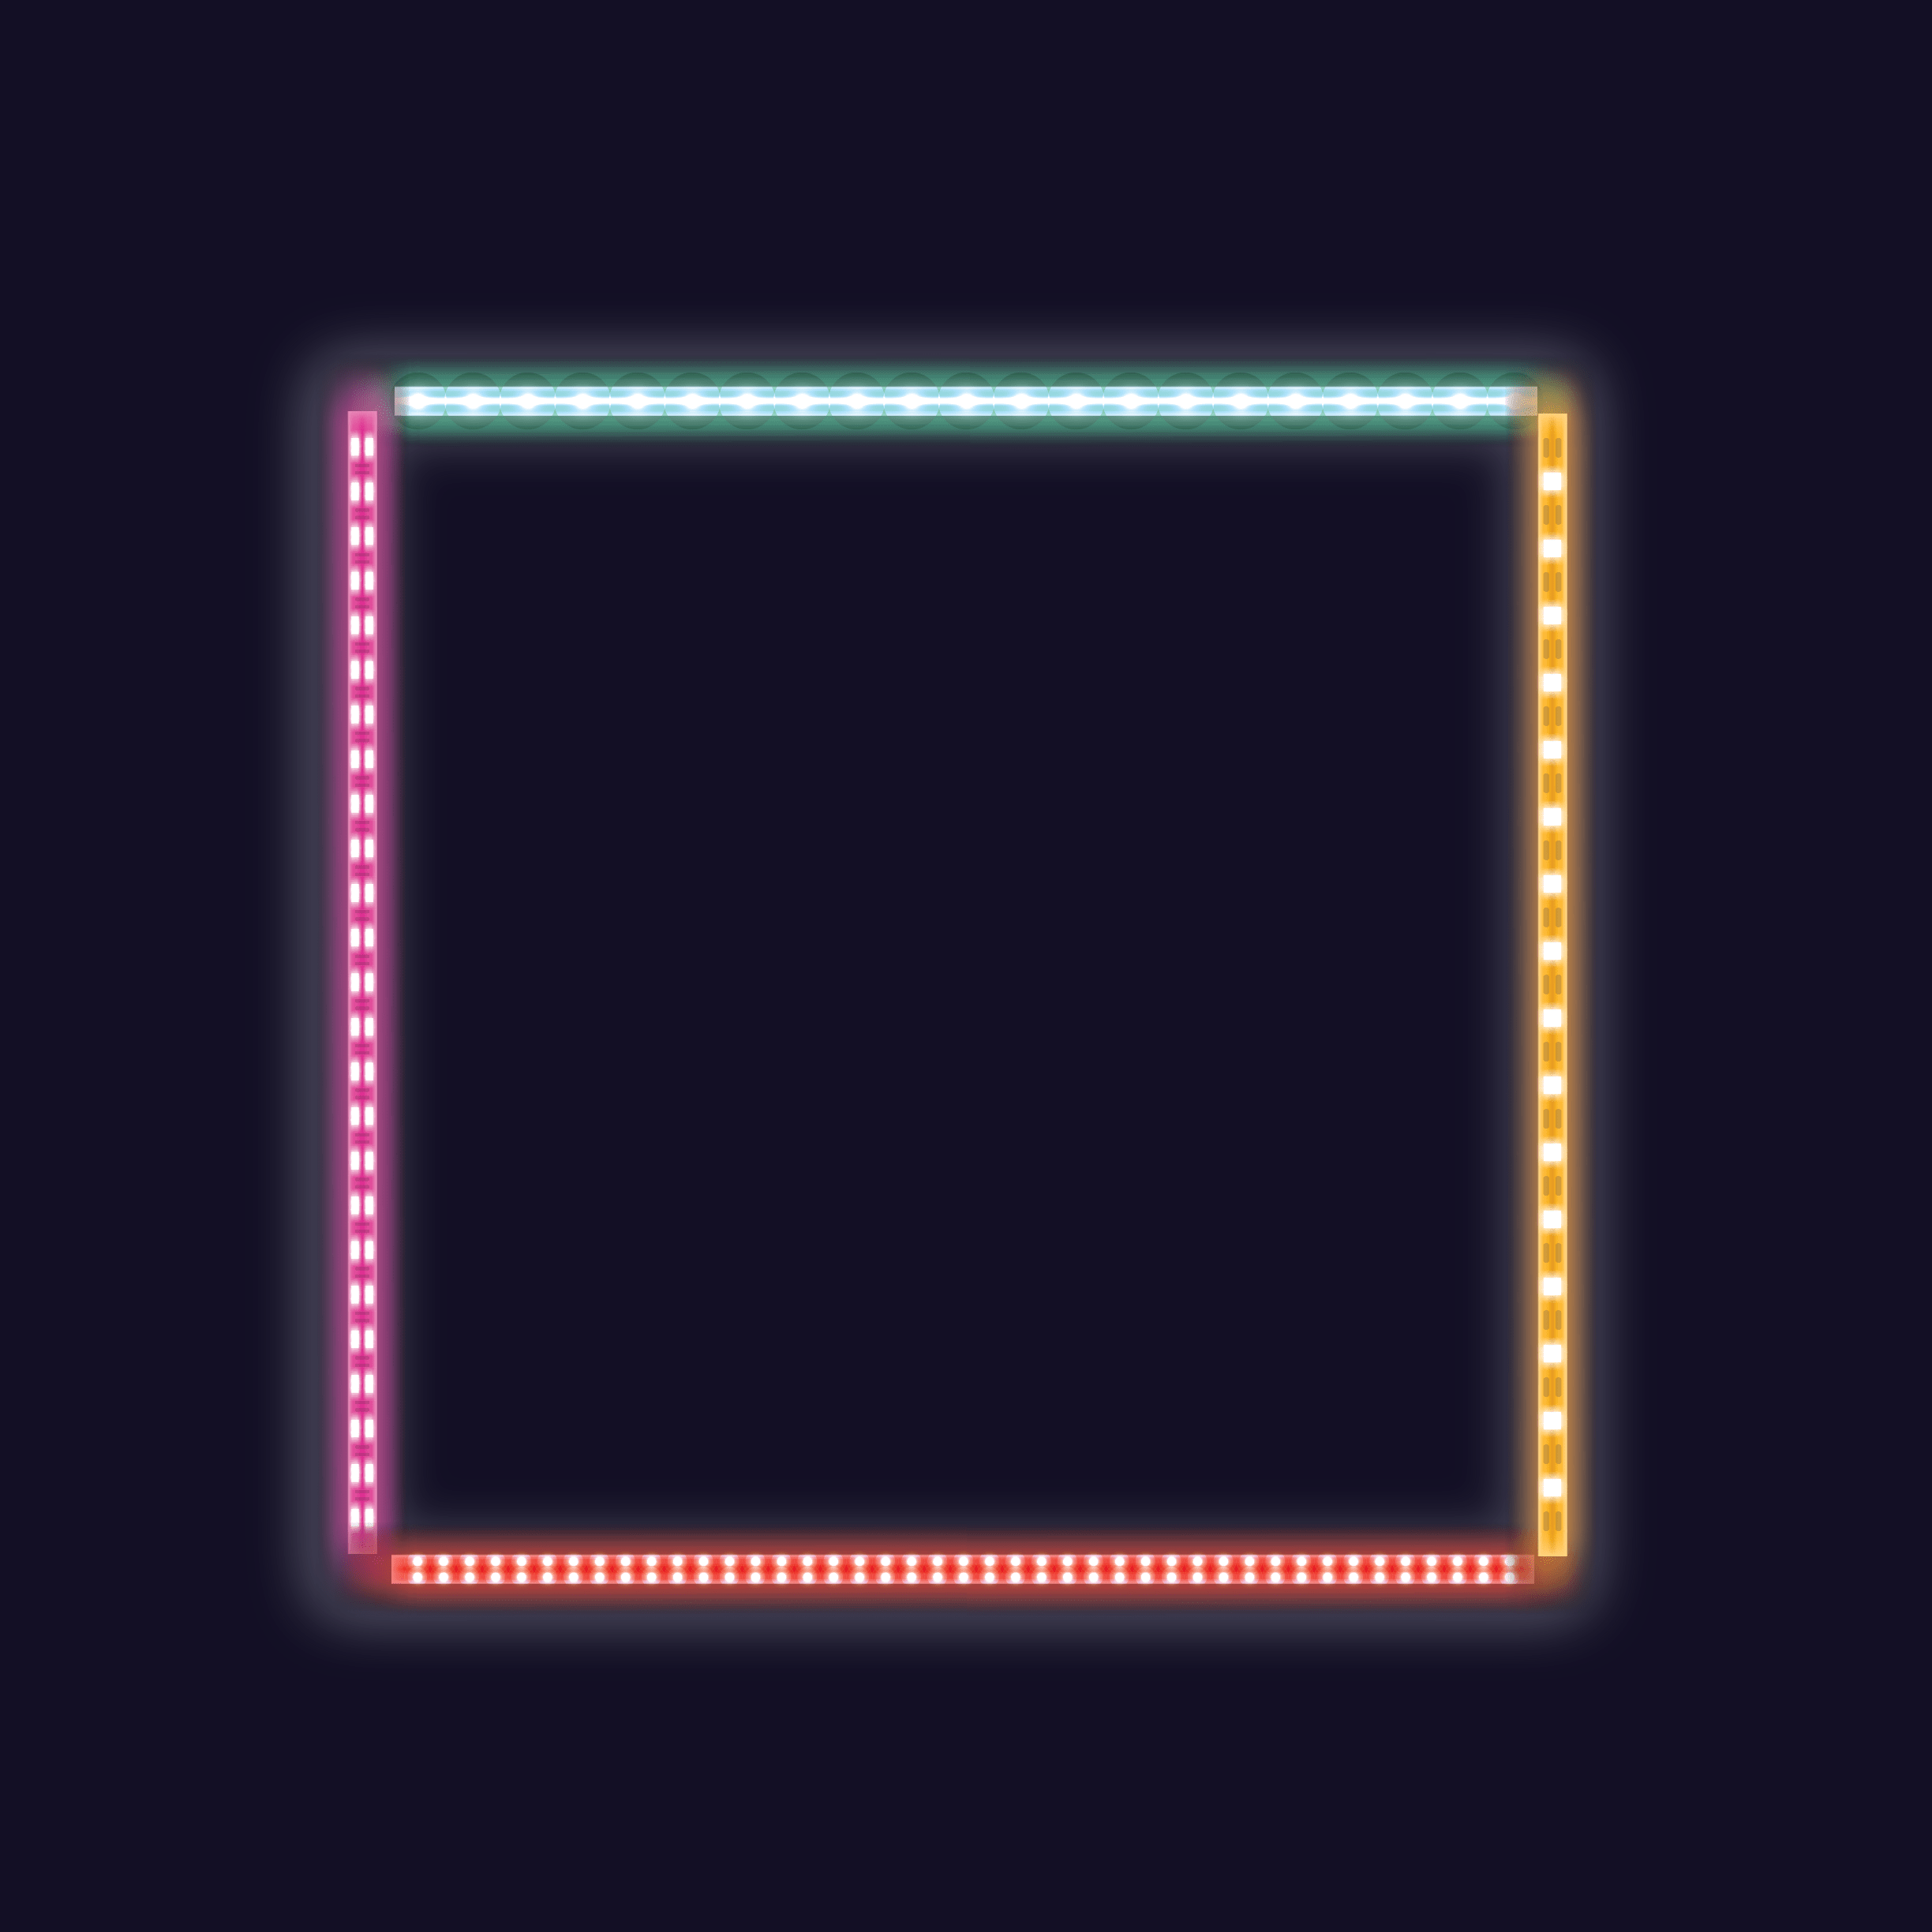 Background with glowing colored led light 2448 x 2448